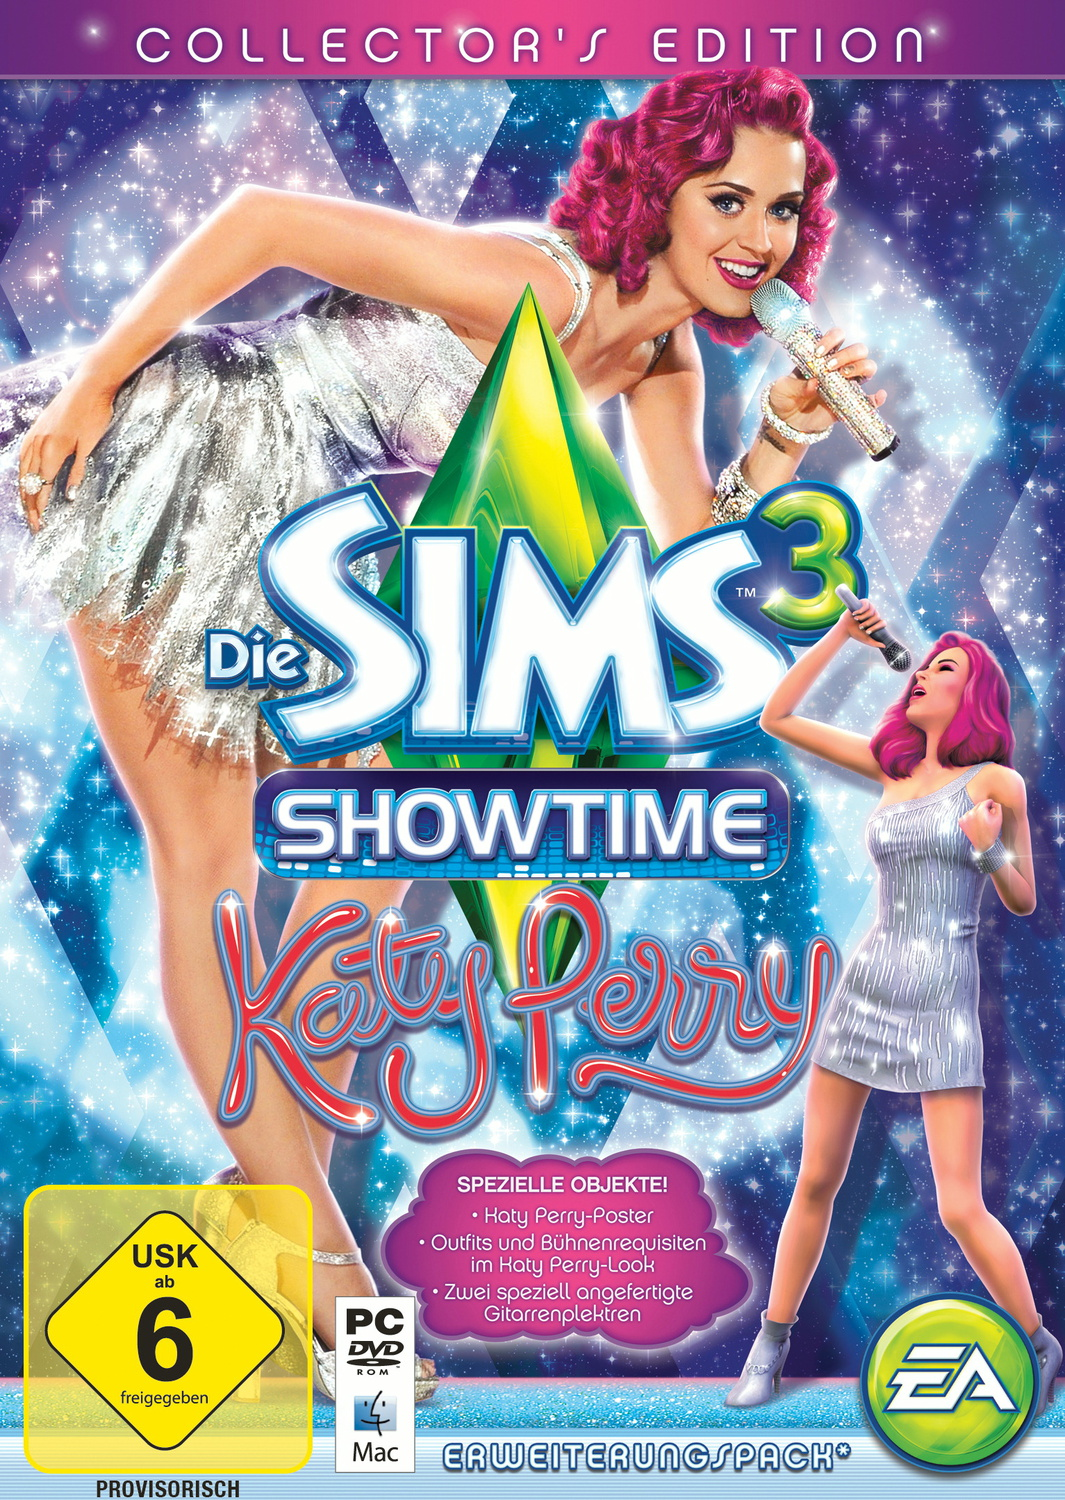 Die Sims 3: Showtime - Katy Perry [Collector´s Edition inkl. 2 Gitarren-Plektren und Katy Perry-Poster, AddOn]